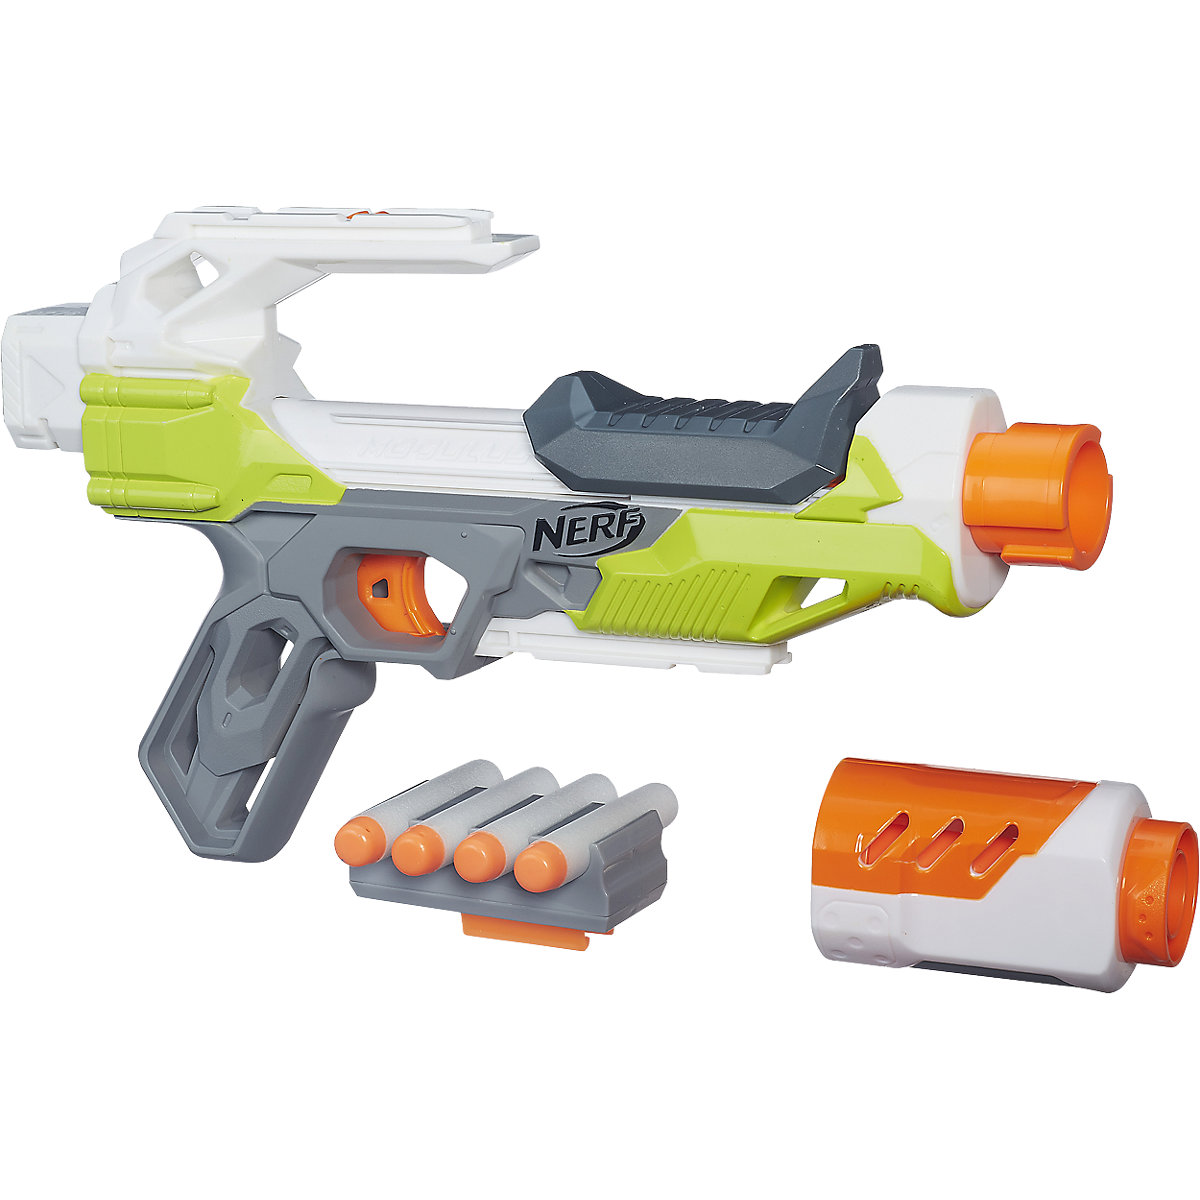 Toy Guns NERF 4306449 Children Kids Toy Gun Weapon Blasters Boys Shooting games Outdoor play children play house toy